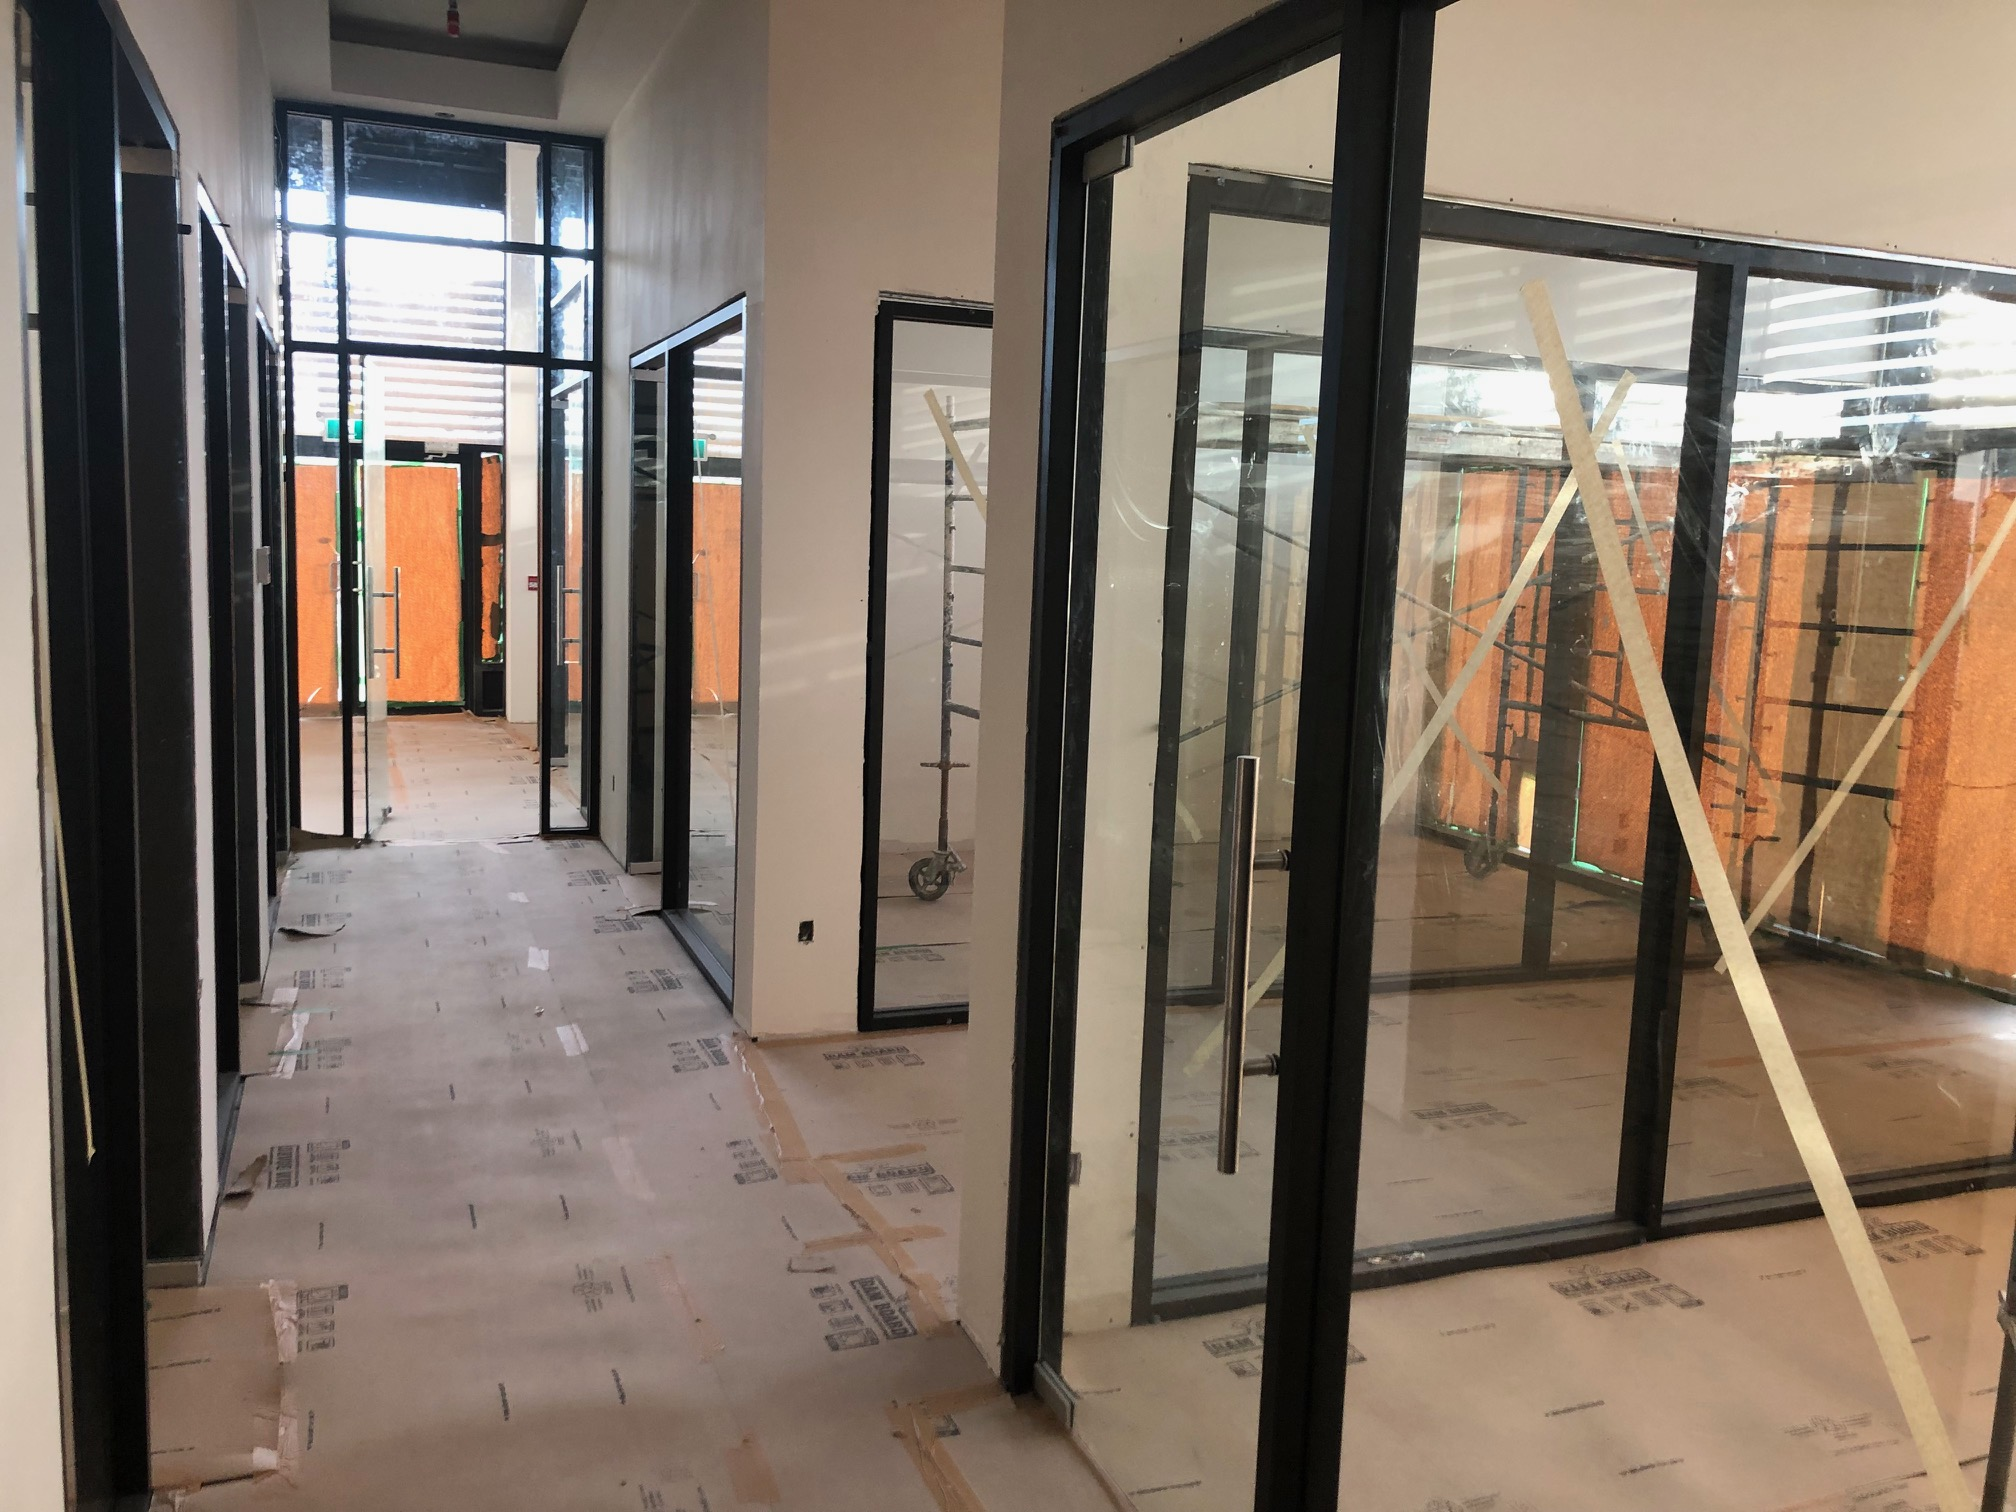 Storefront Windows And Doors abbotsford law office glass doors and walls - valley west glass